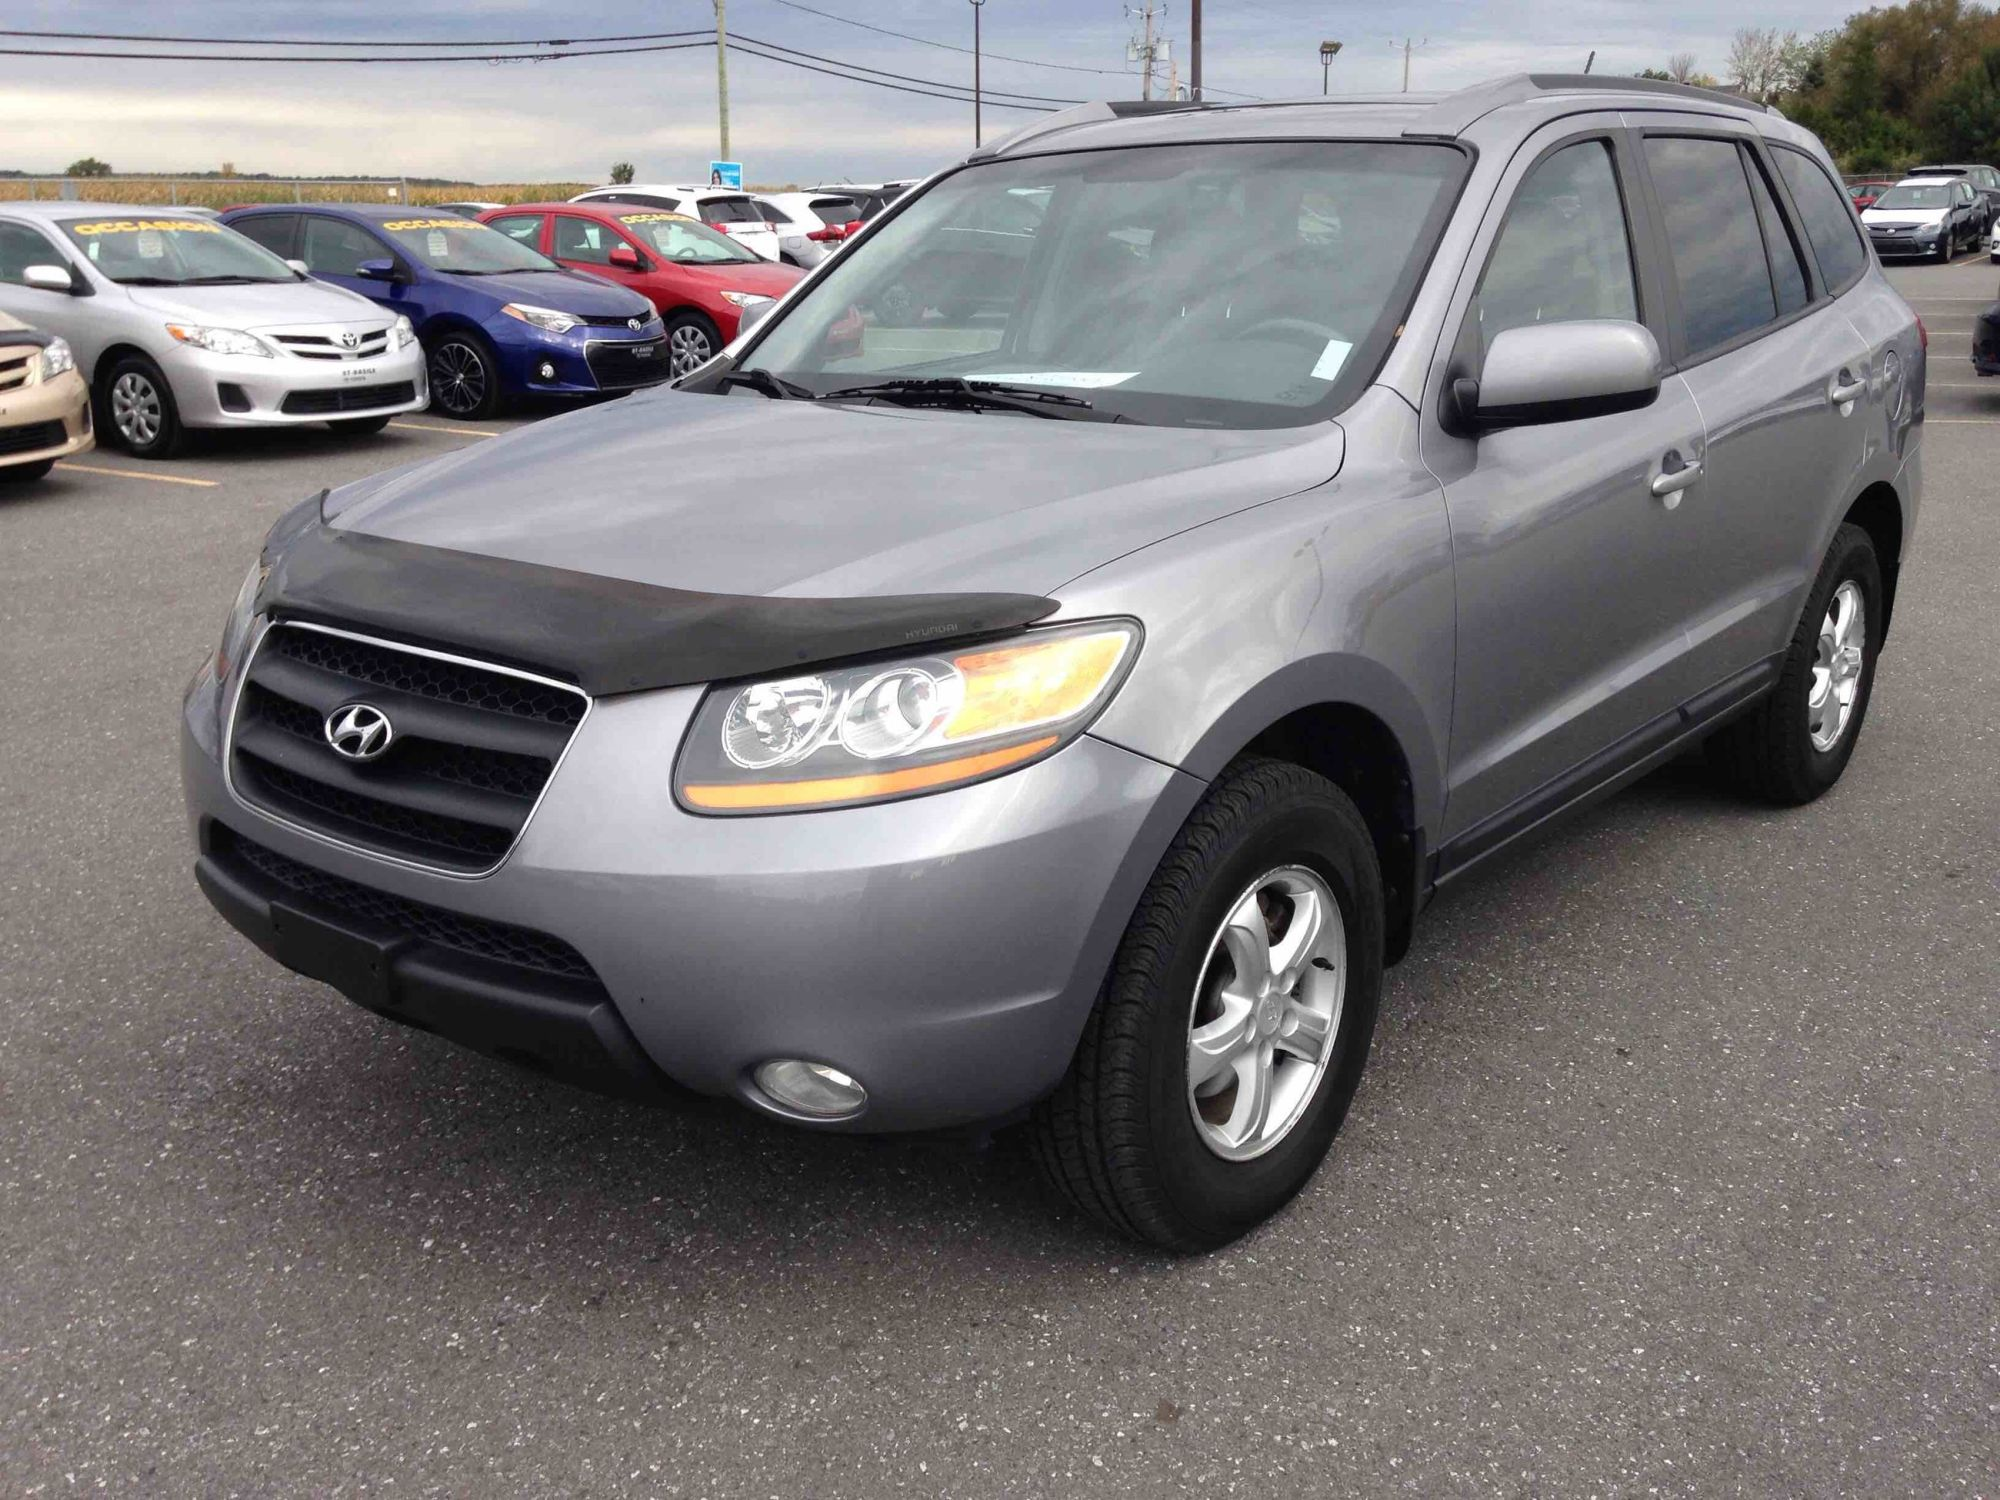 hight resolution of st basile toyota pre owned 2008 hyundai santa fe gls for sale in saint basile le grand